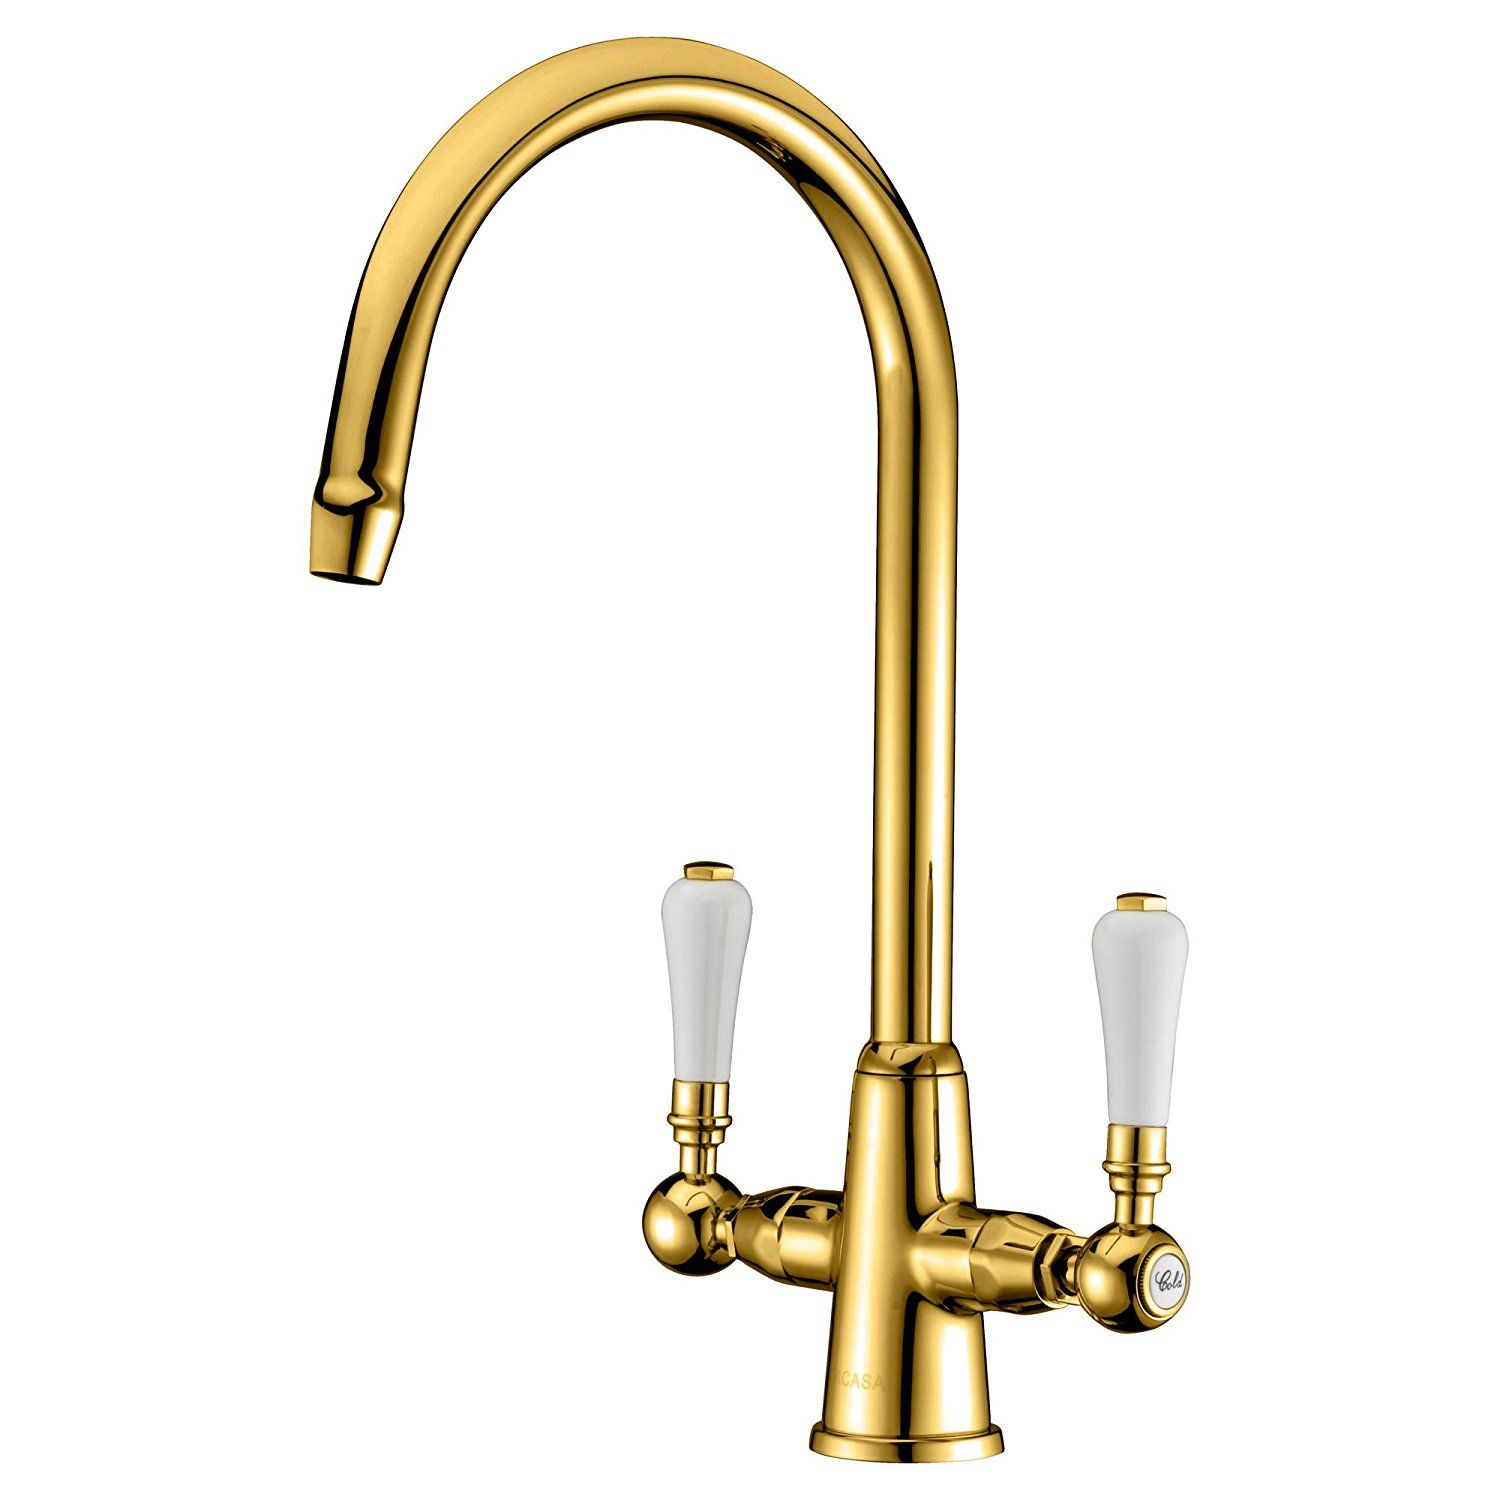 gicasa traditional classic lead free kitchen sink taps, monobloc